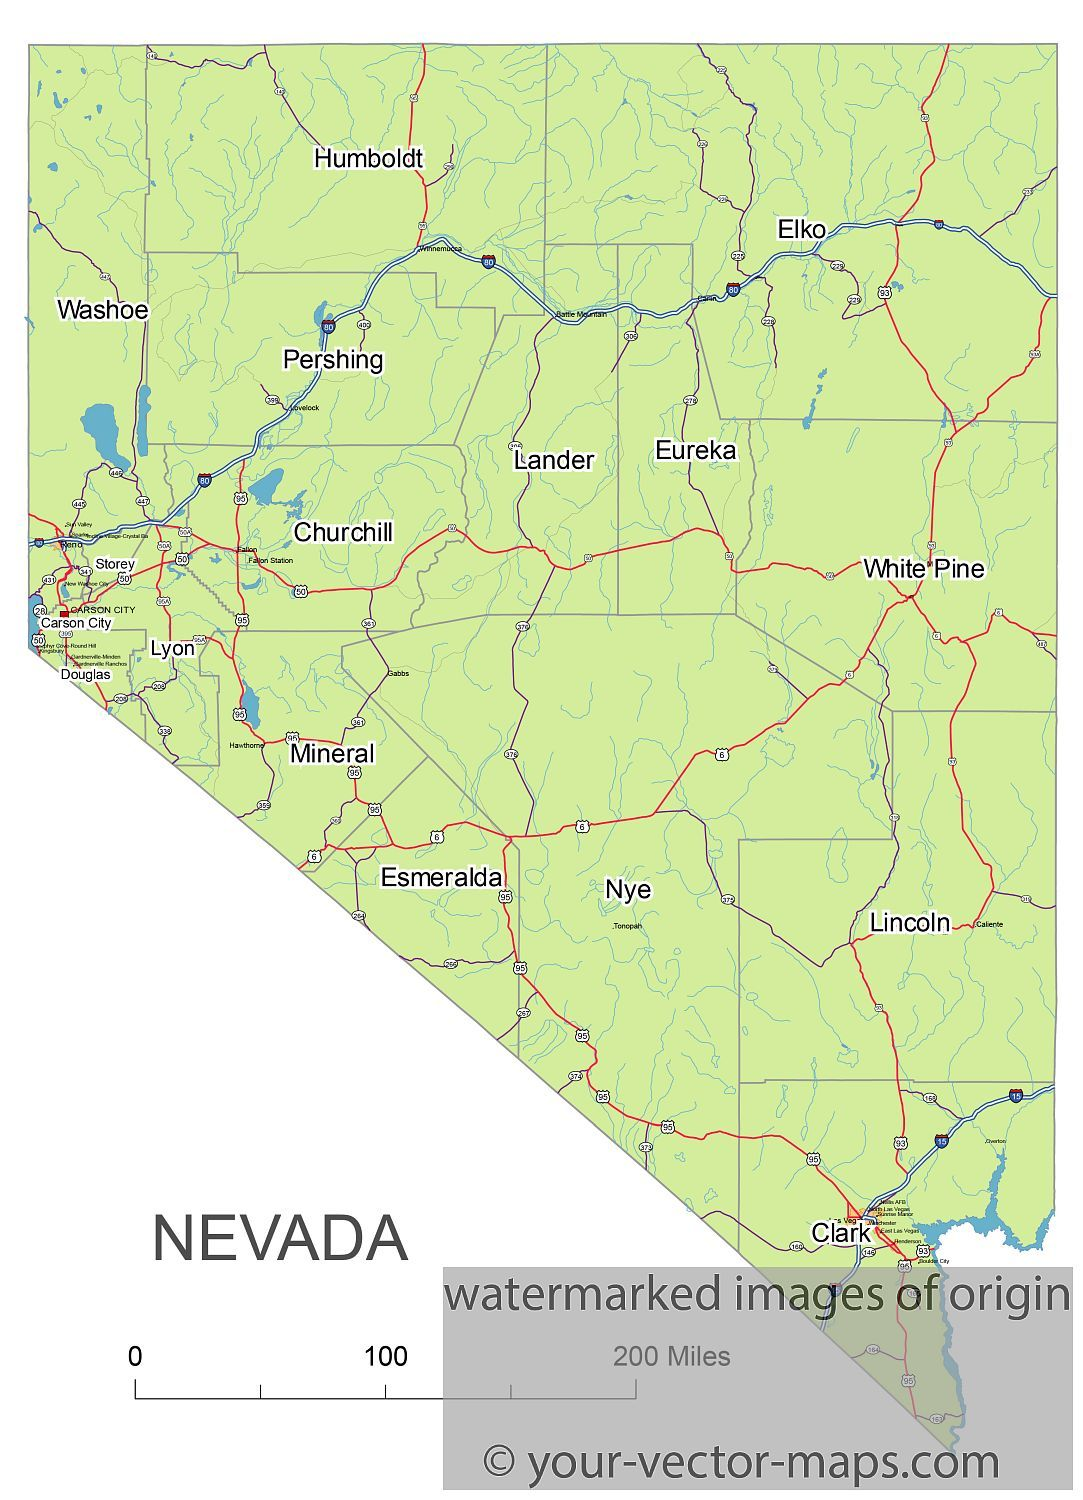 Nevada State Route Network Map Nevada Highways Map Cities Of